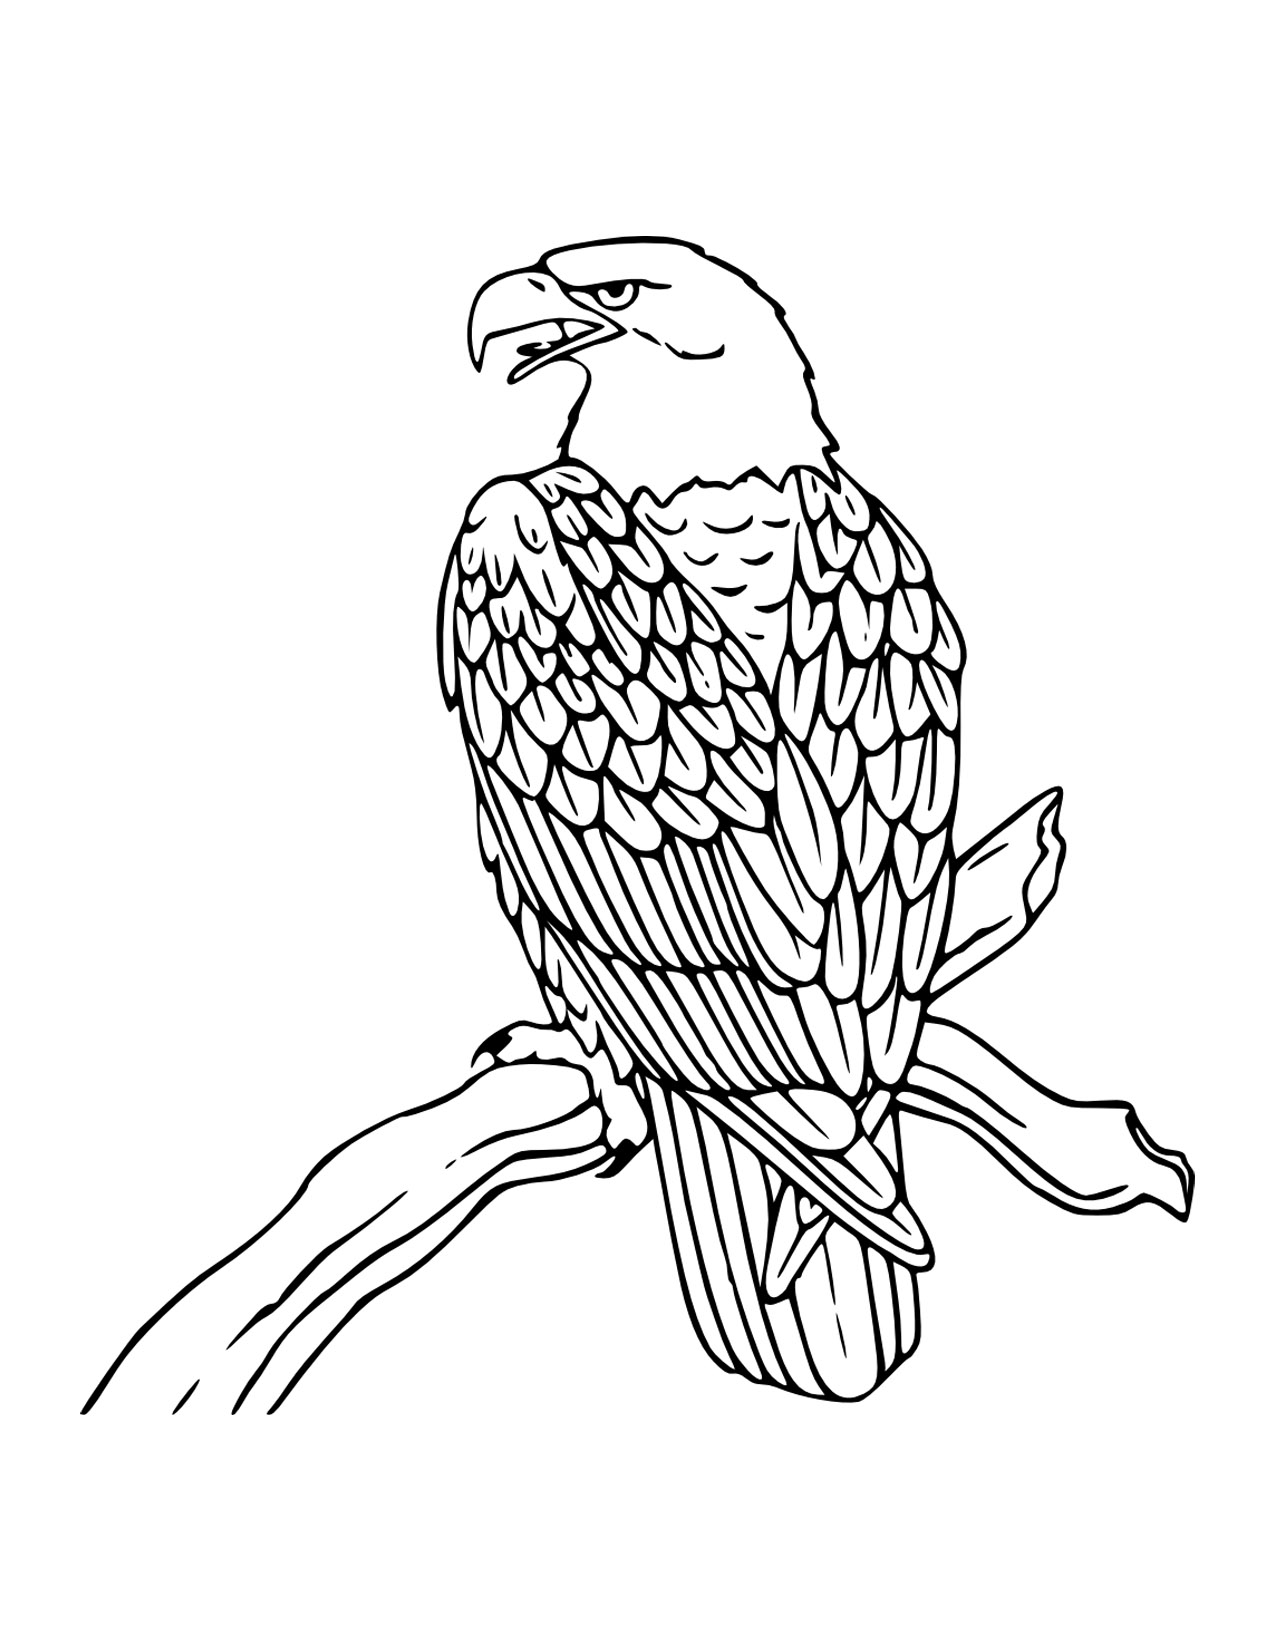 bald eagle coloring pages for kids - American Bald Eagle Coloring Page